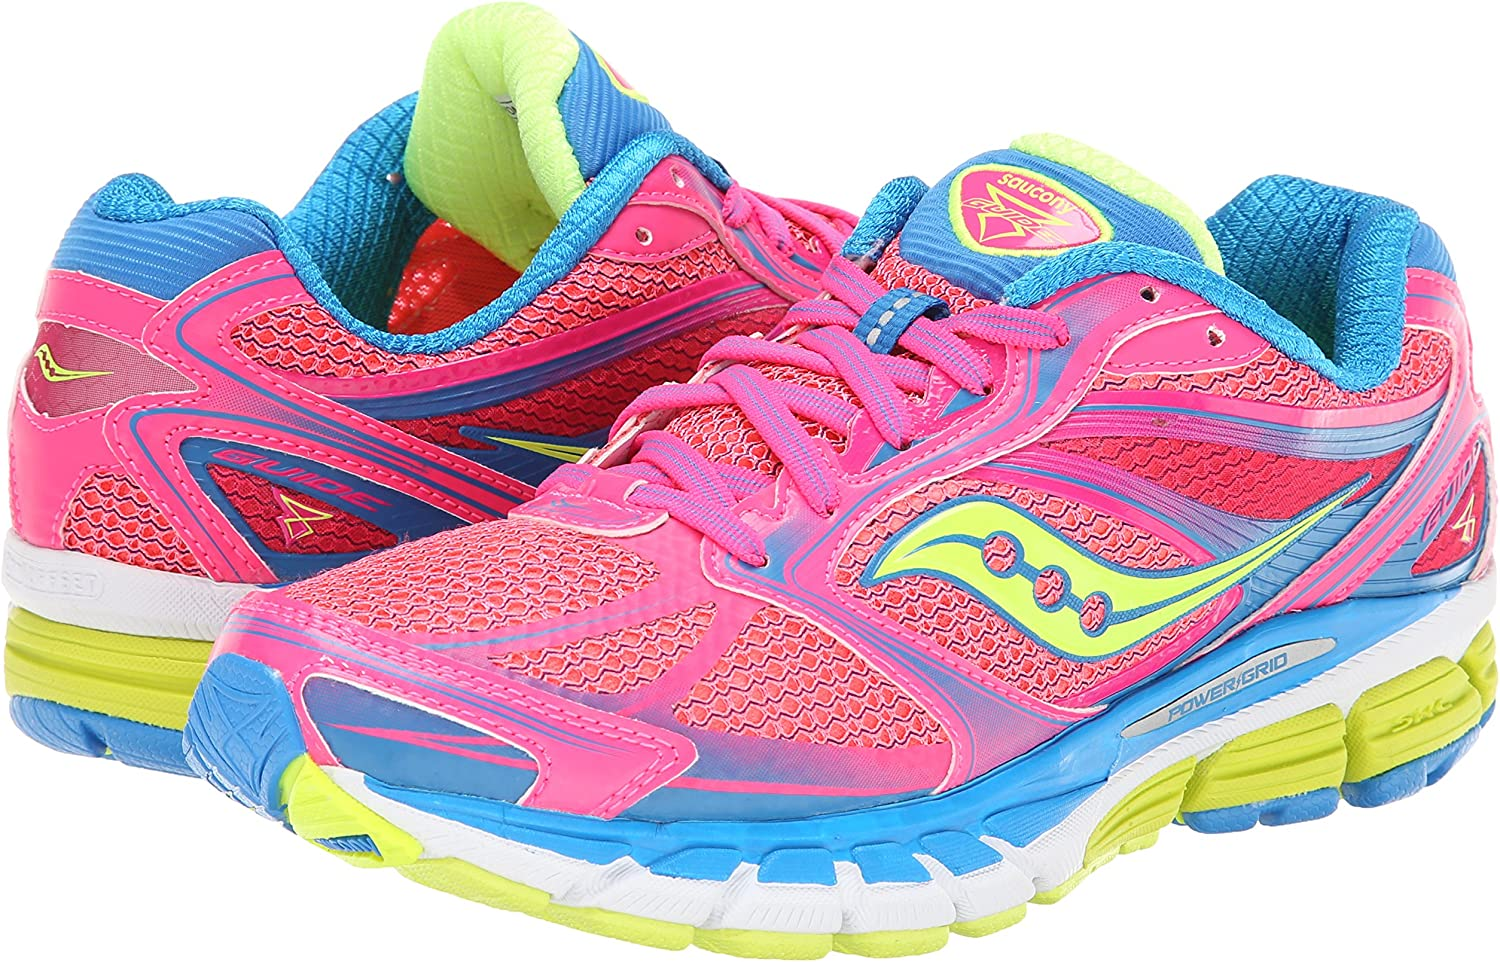 Saucony Guide 8 -Saucony zapatillas se–ora, talla 40,5 color rosa: Amazon.es: Zapatos y complementos